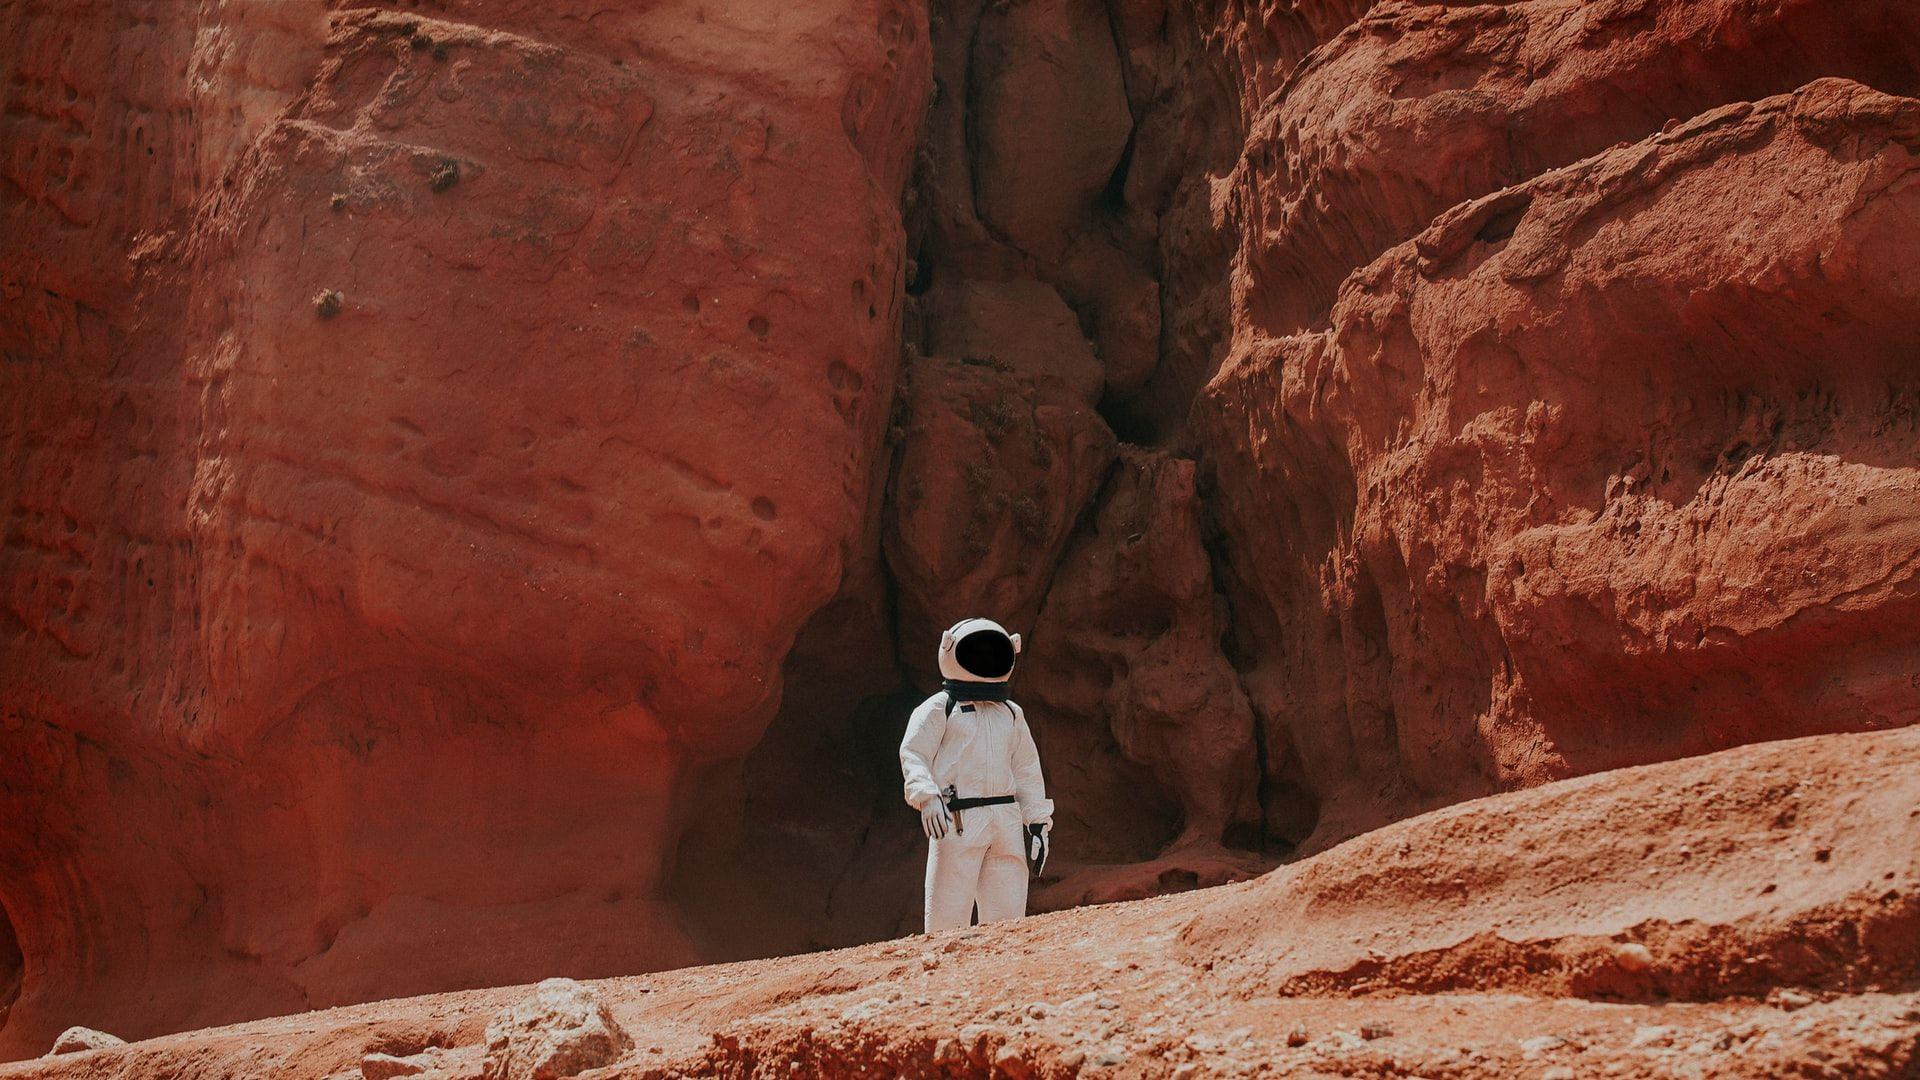 /the-ongoing-mars-missions-are-we-ready-to-live-on-the-red-planet-7d2d3tpt feature image